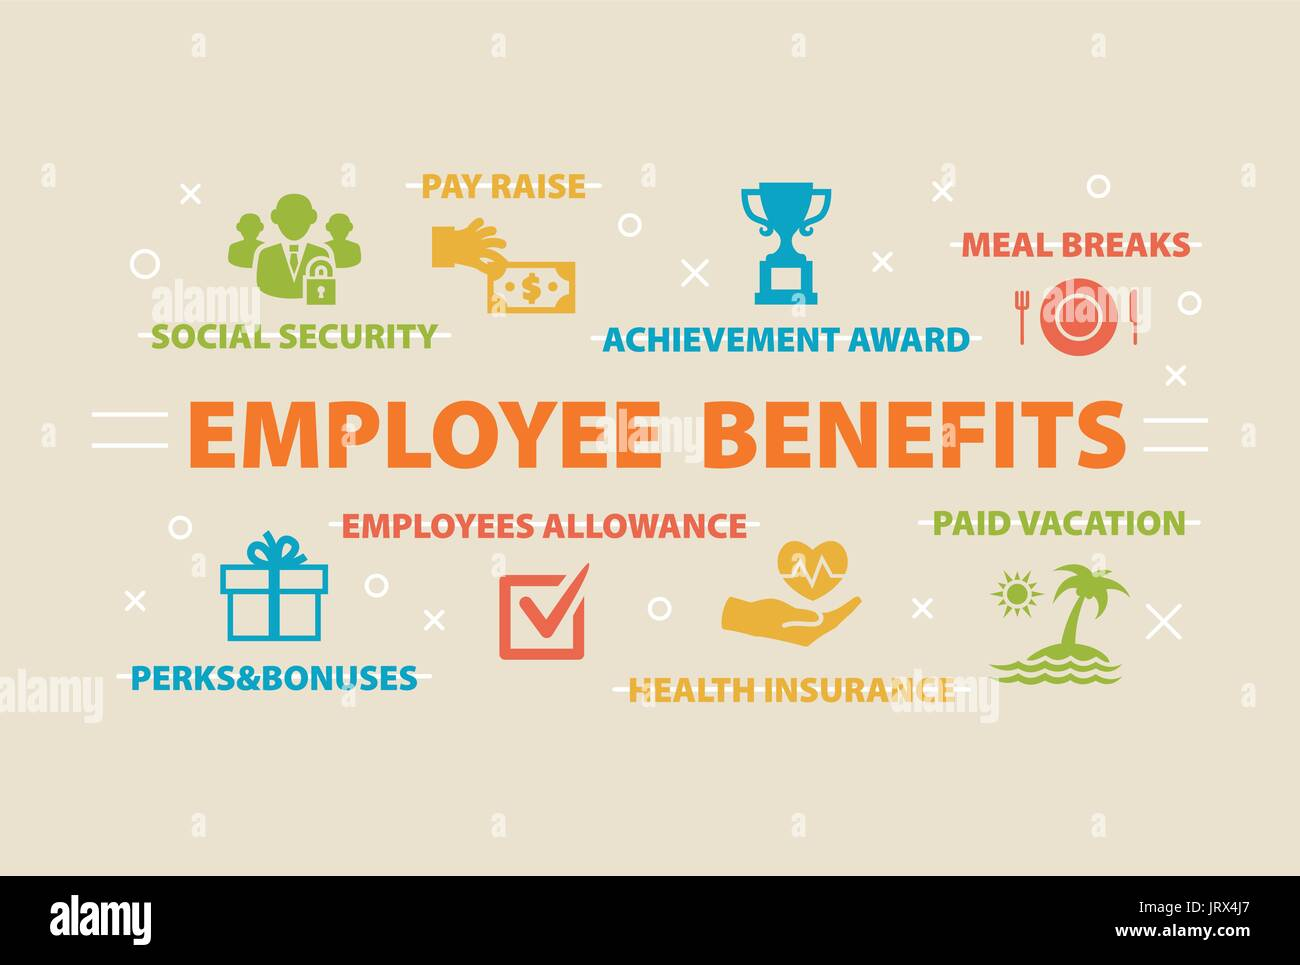 EMPLOYEE BENEFITS Concept with icons Stock Vector